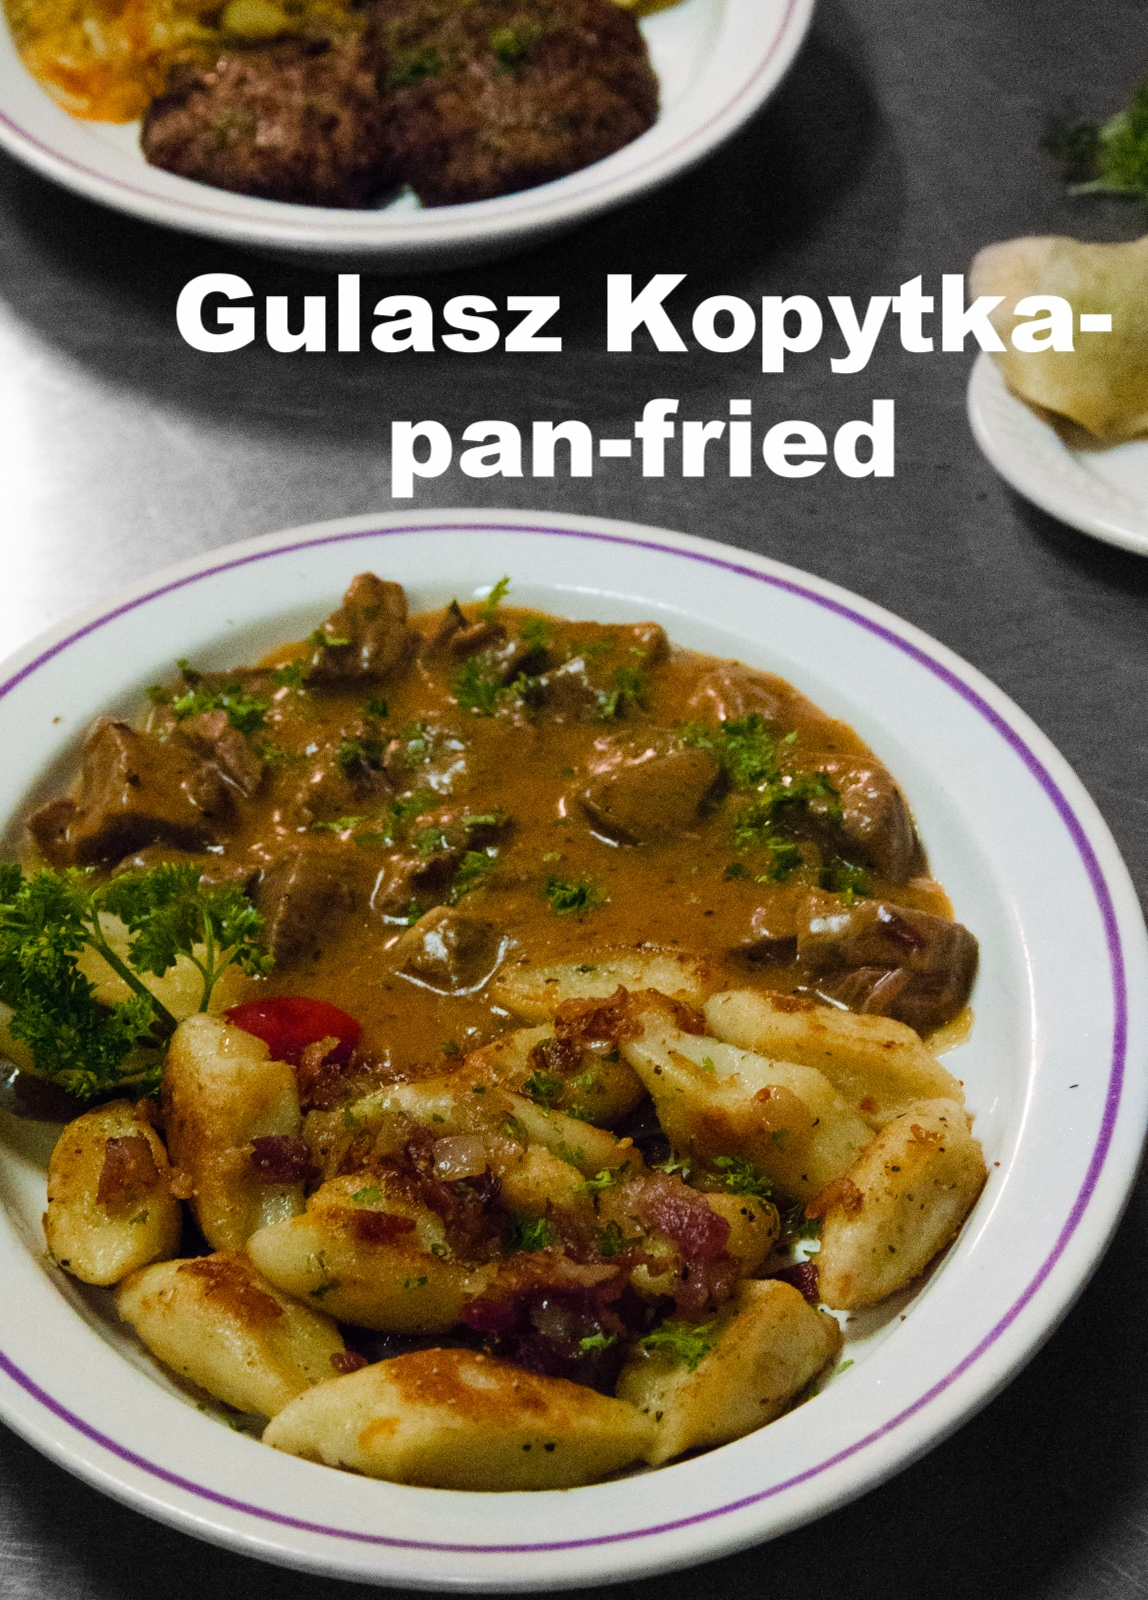 Food - Kopytka and Gulaz.jpg